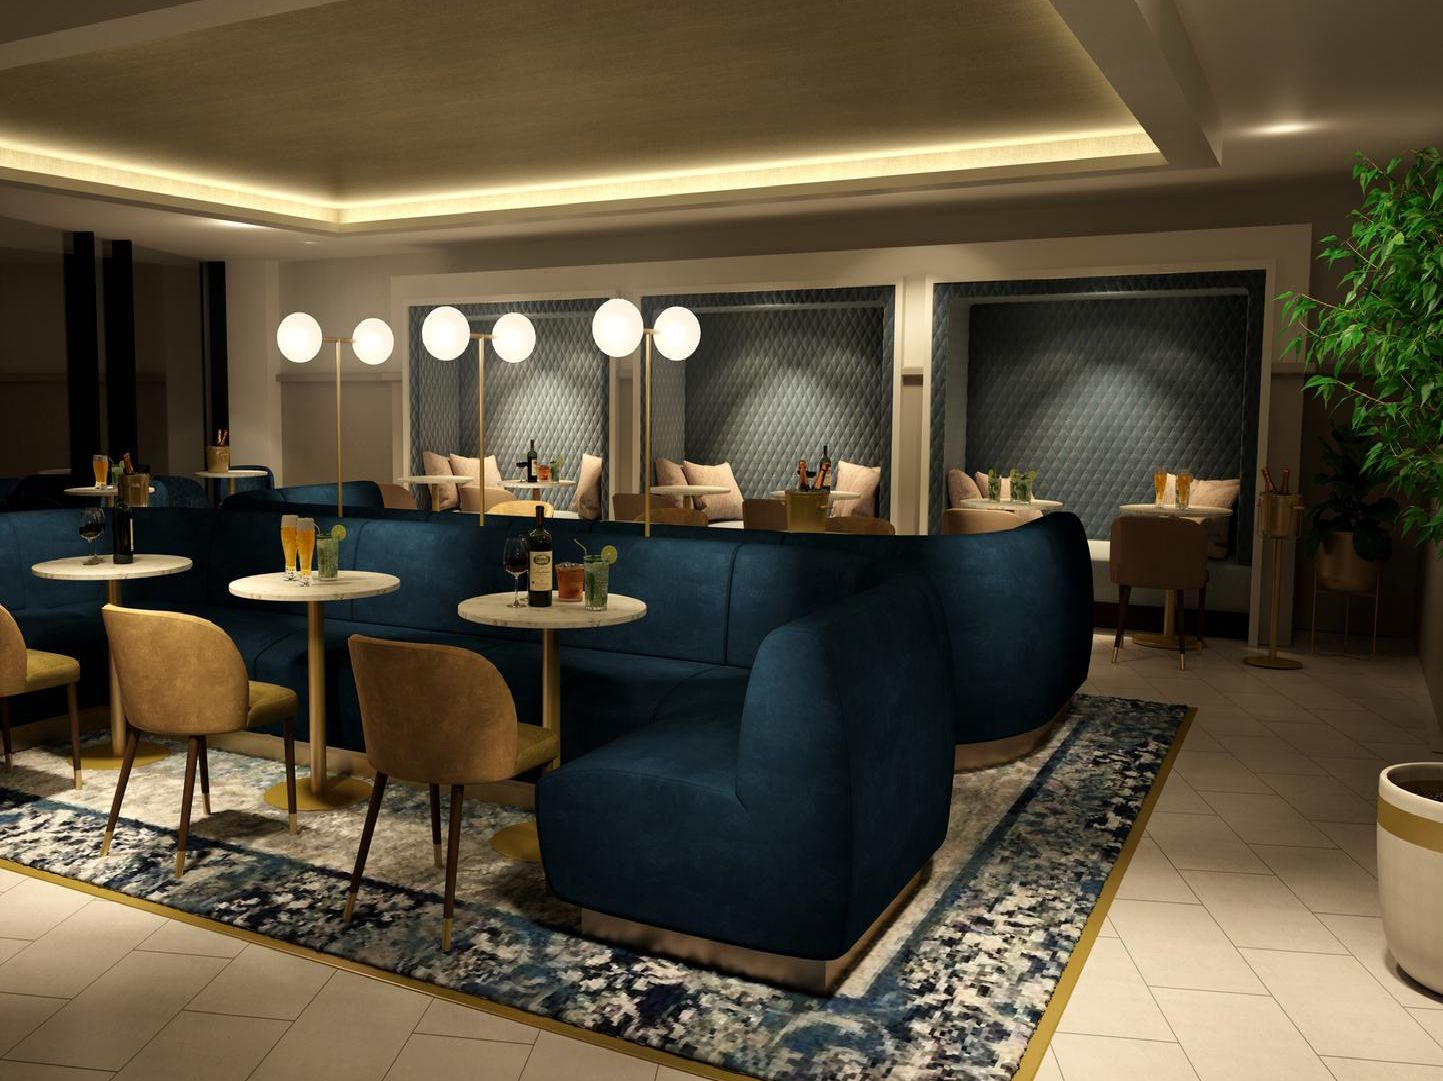 Computer image of a pre-function area in the hotel